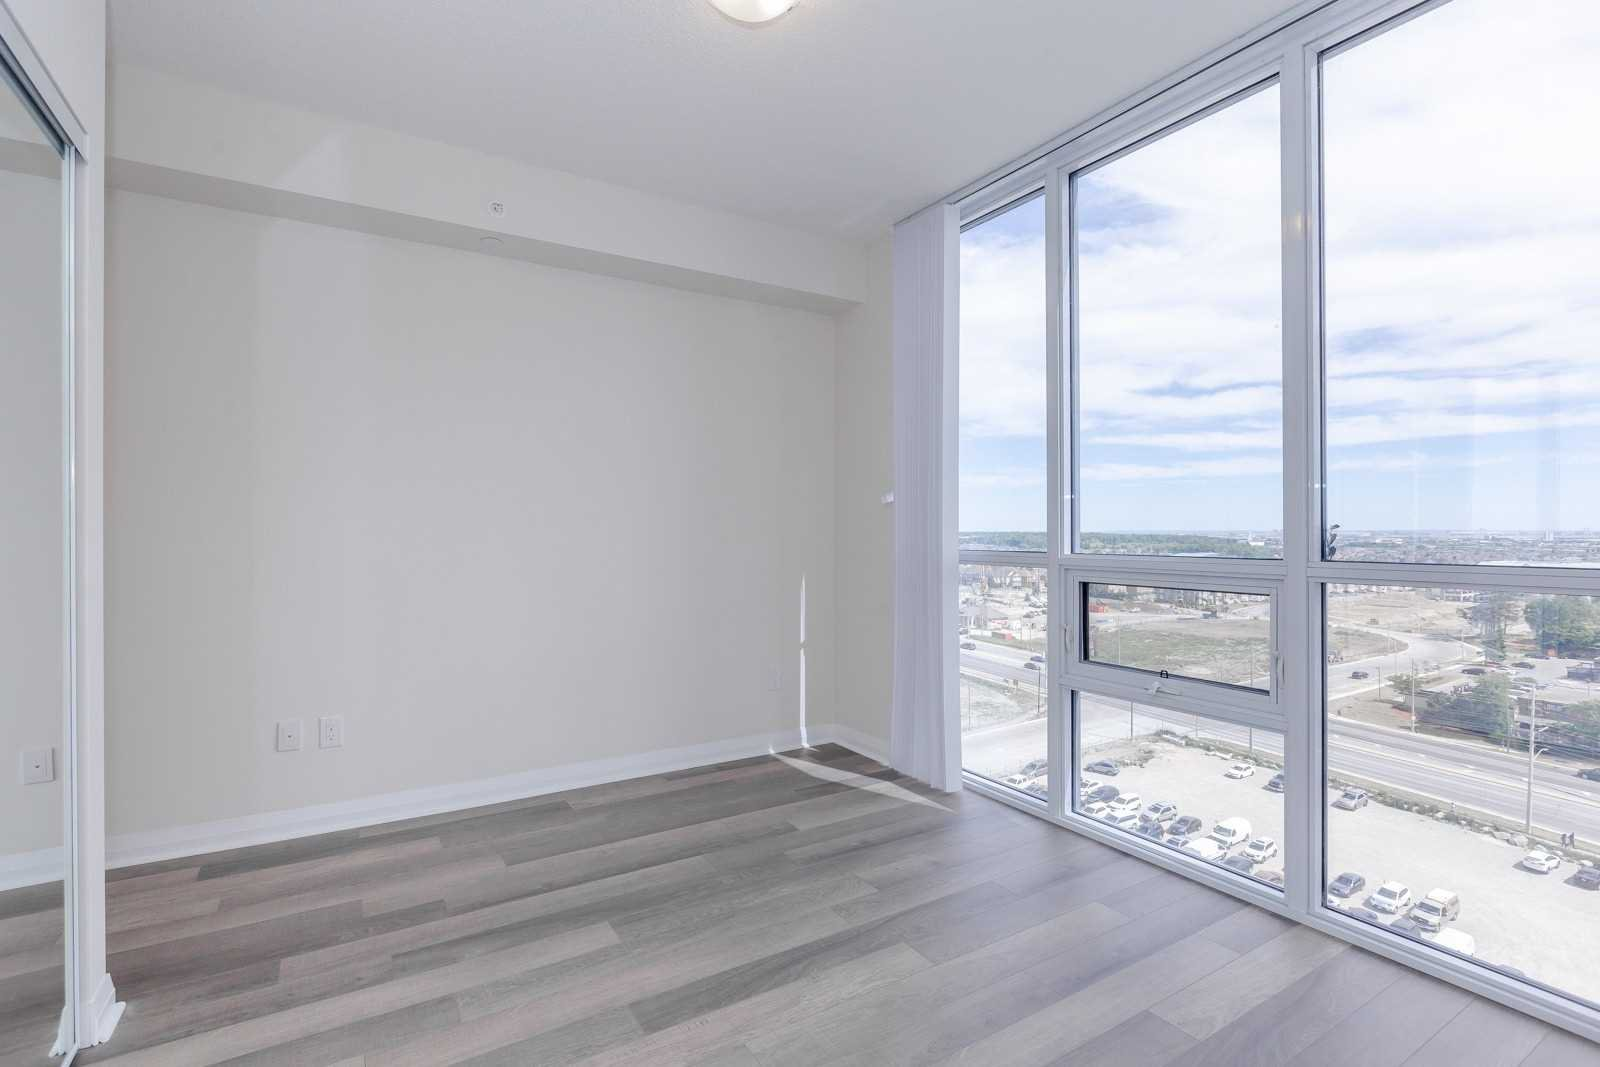 Photo 13: Photos: 1204 5025 Four Springs Avenue in Mississauga: Hurontario Condo for lease : MLS®# W4582092